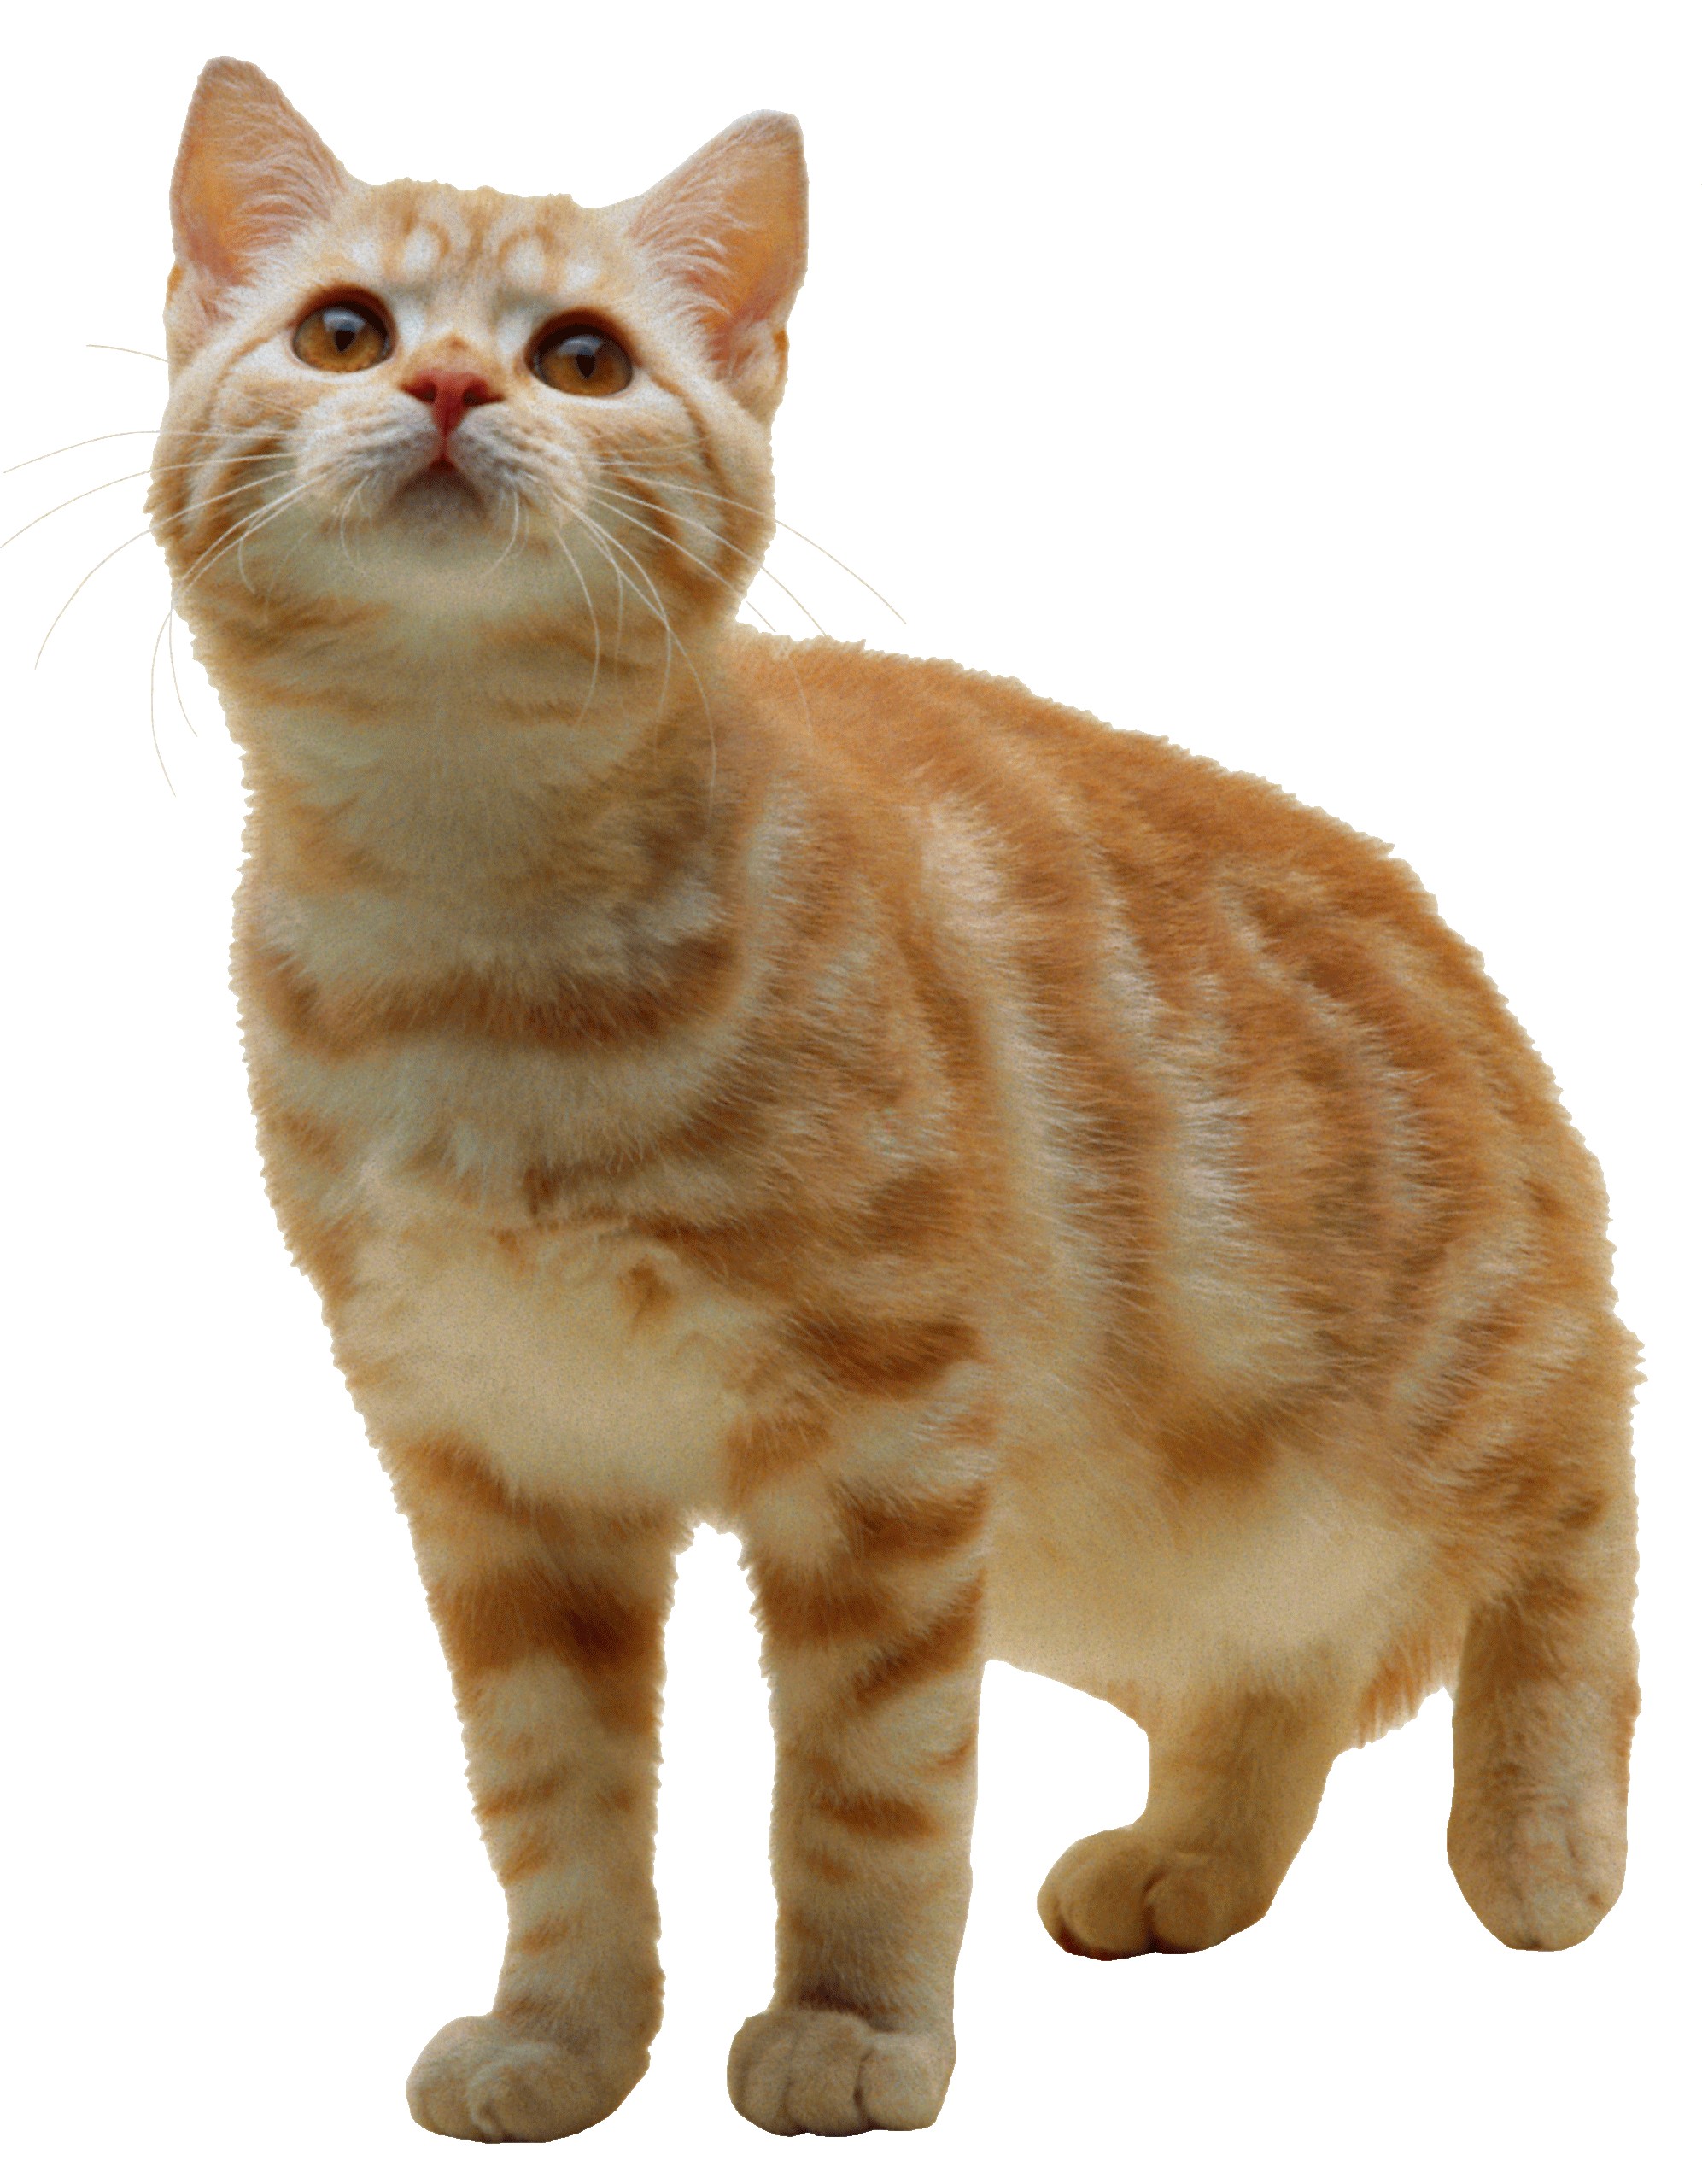 Free cut out clipart cat graphic freeuse Cat / Image ID: 536 | PNG Photo with Transparent Background graphic freeuse